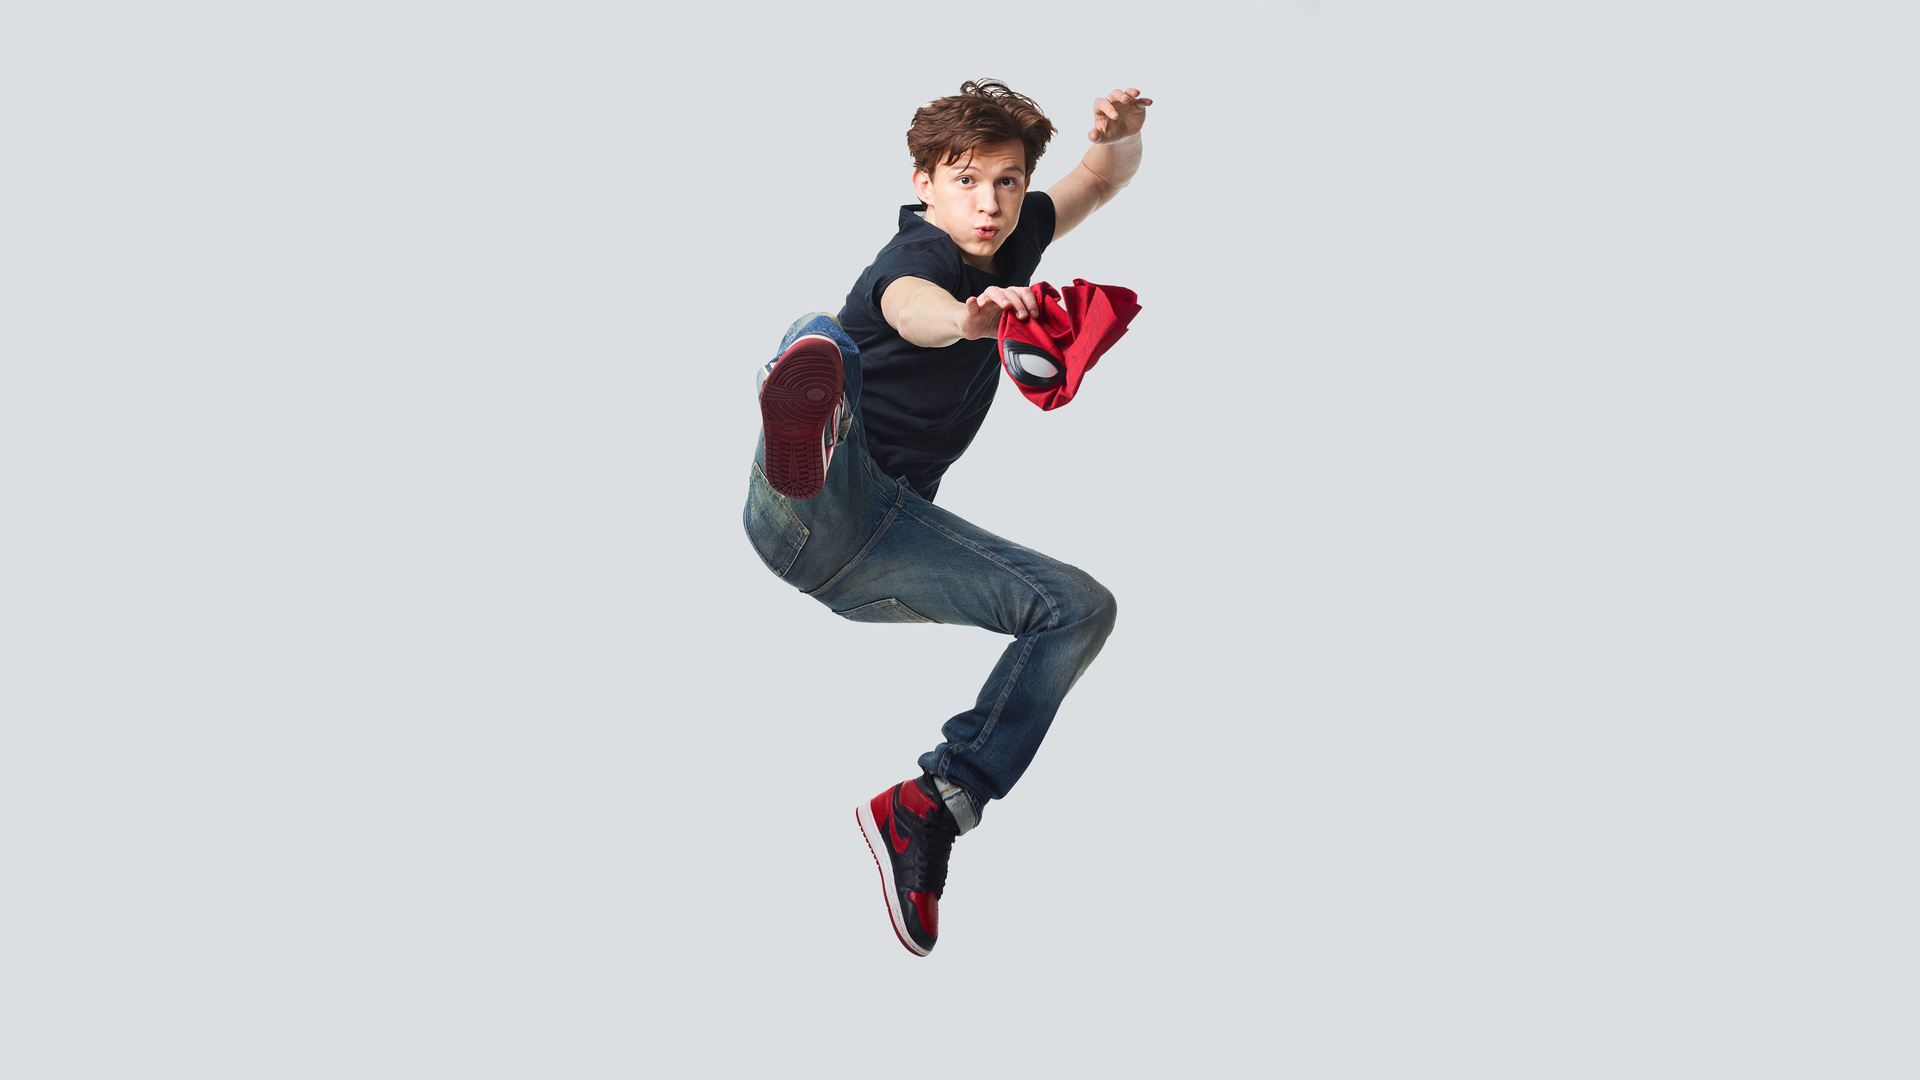 1920x1080 Tom Holland Spiderman Laptop Full Hd 1080p Hd 4k Wallpapers Images Backgrounds Photos And Pictures Tom holland aesthetic ringtones and wallpapers. 1920x1080 tom holland spiderman laptop